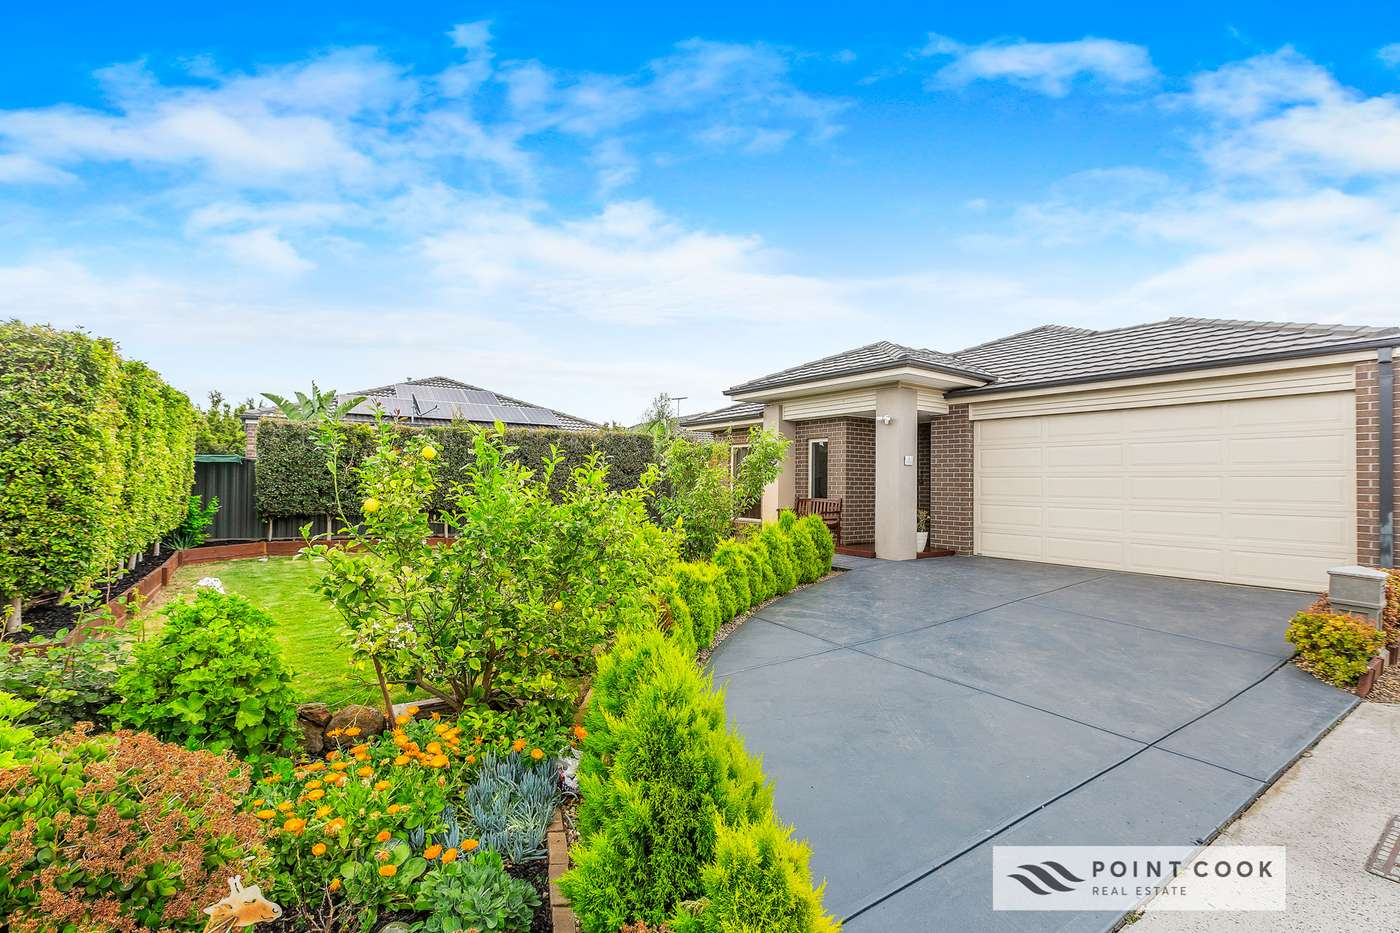 Main view of Homely house listing, 7 Michael Place, Point Cook, VIC 3030